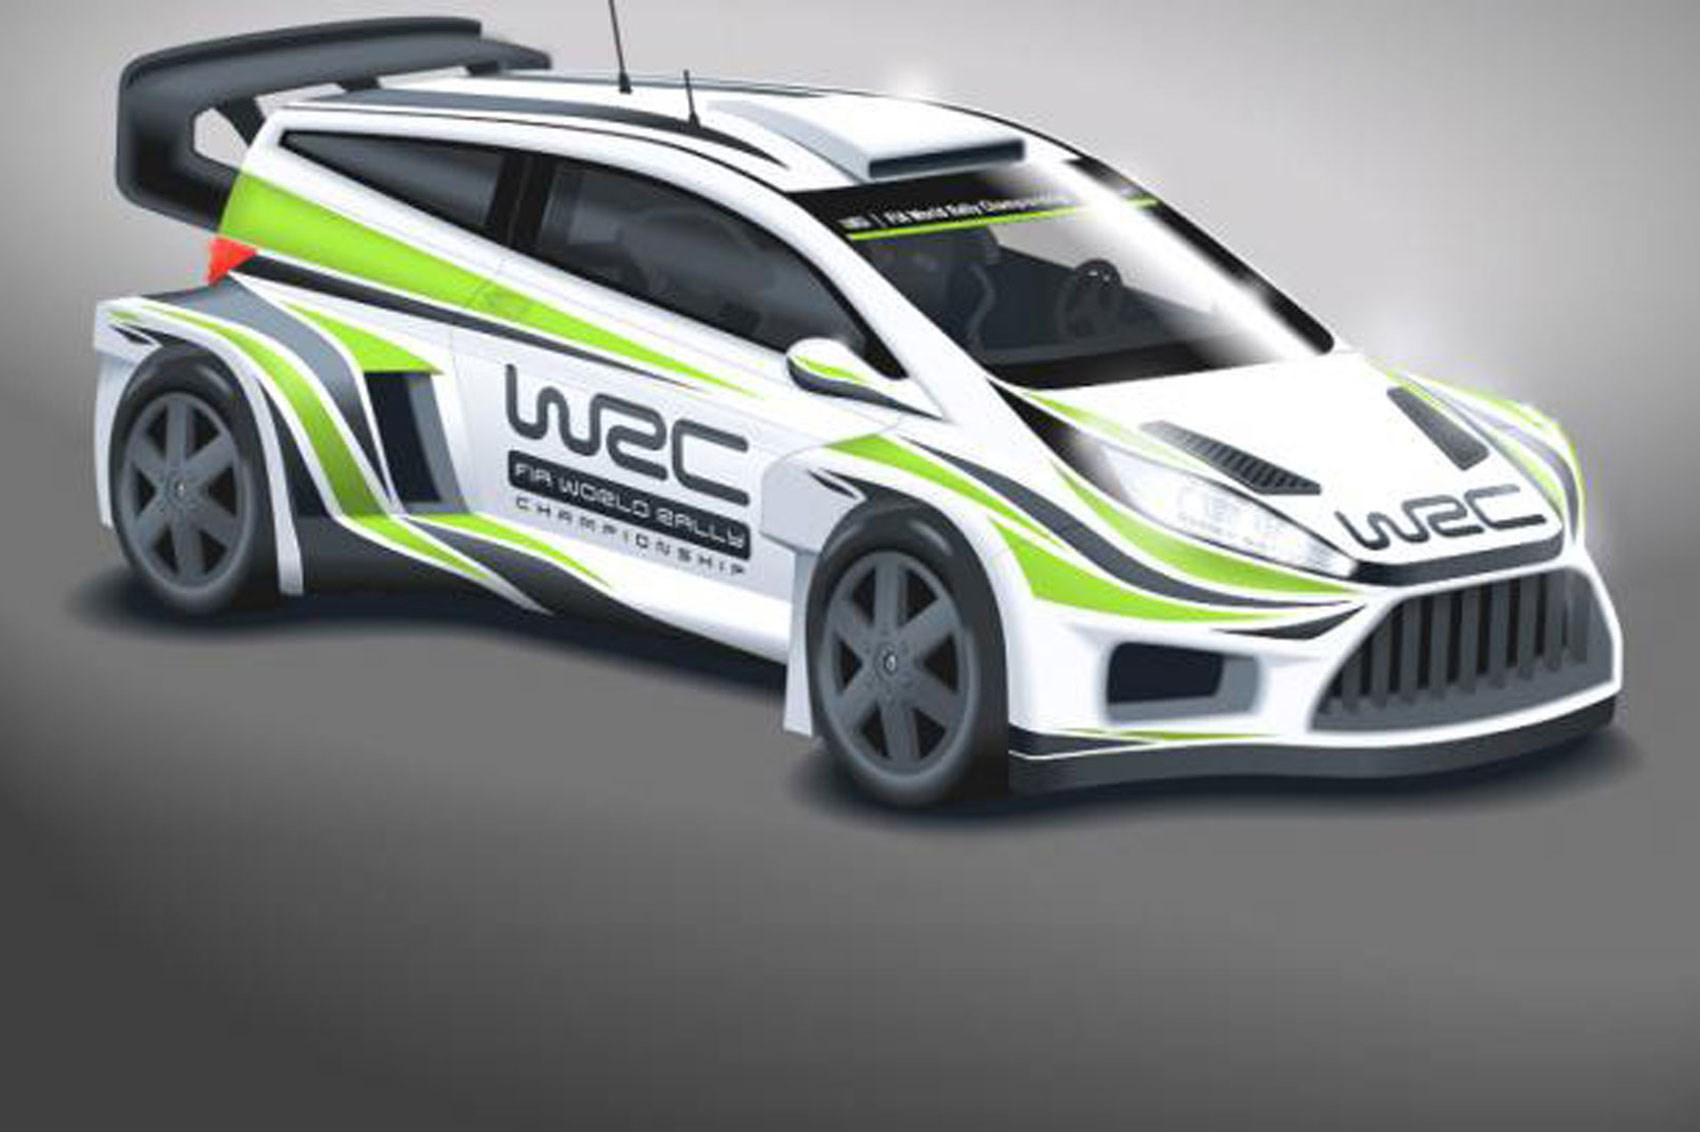 Ultrablogus  Marvelous Wild New Look For Wrc Cars In  By Car Magazine With Excellent Wrc Cars Will Get Wider Bodies Bigger Wings And More Power For  With Awesome Sport Interior Design Also Smart Brabus Interior In Addition New Mercedes C Class Interior And Defender Interior As Well As Gl Class Interior Additionally Fiat E Interior From Carmagazinecouk With Ultrablogus  Excellent Wild New Look For Wrc Cars In  By Car Magazine With Awesome Wrc Cars Will Get Wider Bodies Bigger Wings And More Power For  And Marvelous Sport Interior Design Also Smart Brabus Interior In Addition New Mercedes C Class Interior From Carmagazinecouk